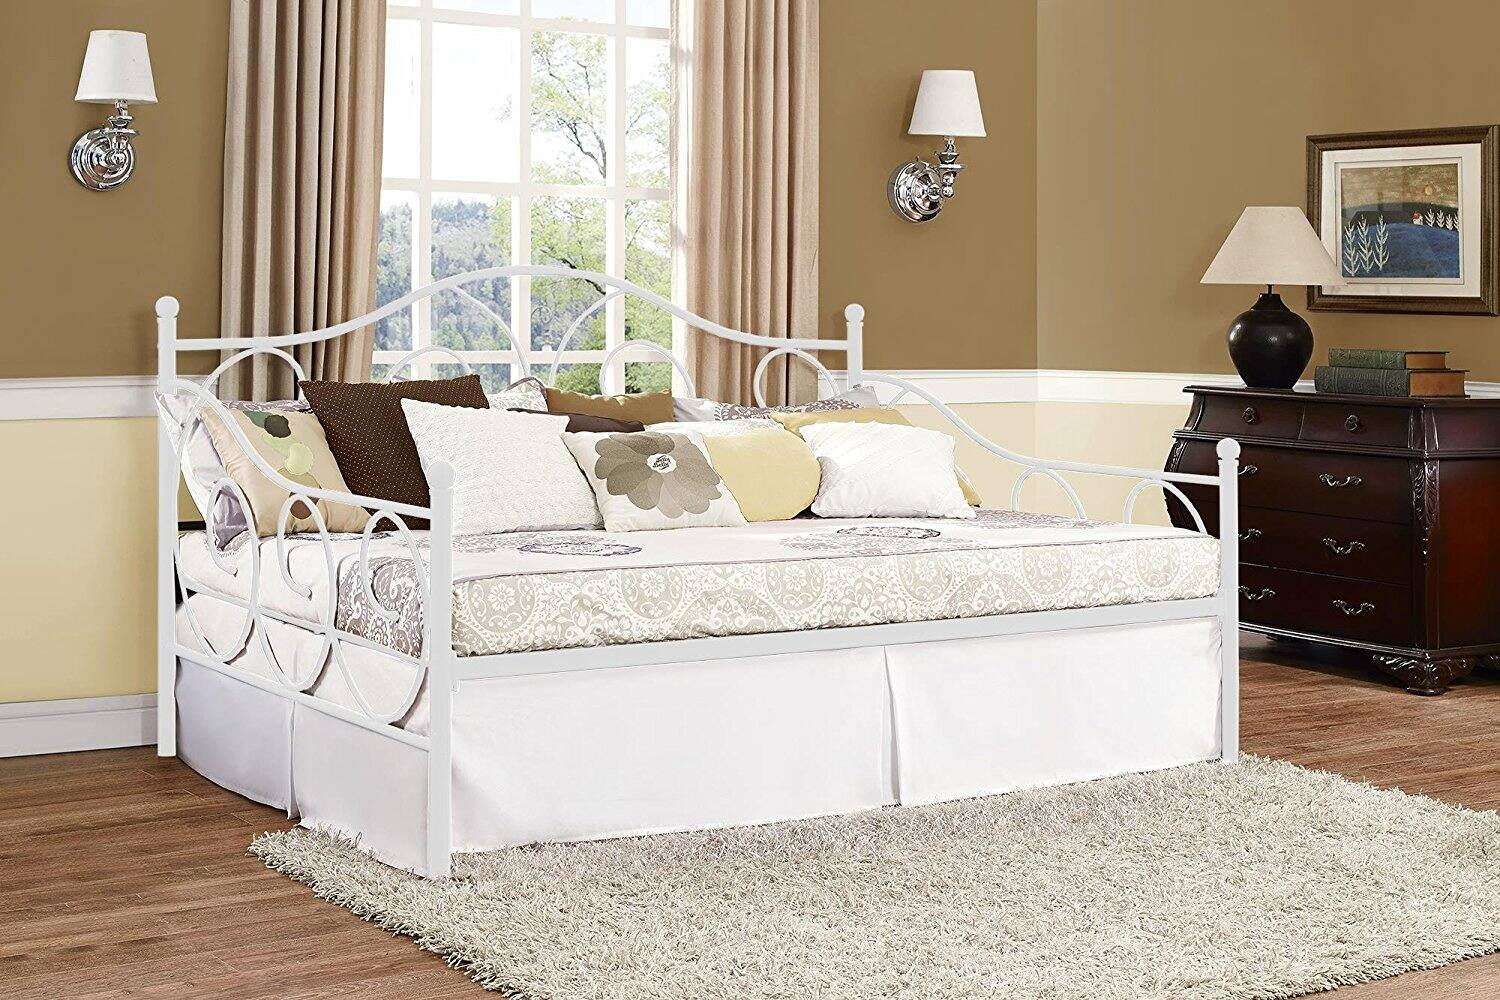 Cute DHP Victoria Full Size Metal Daybed White FS w Prime Slickdeals net